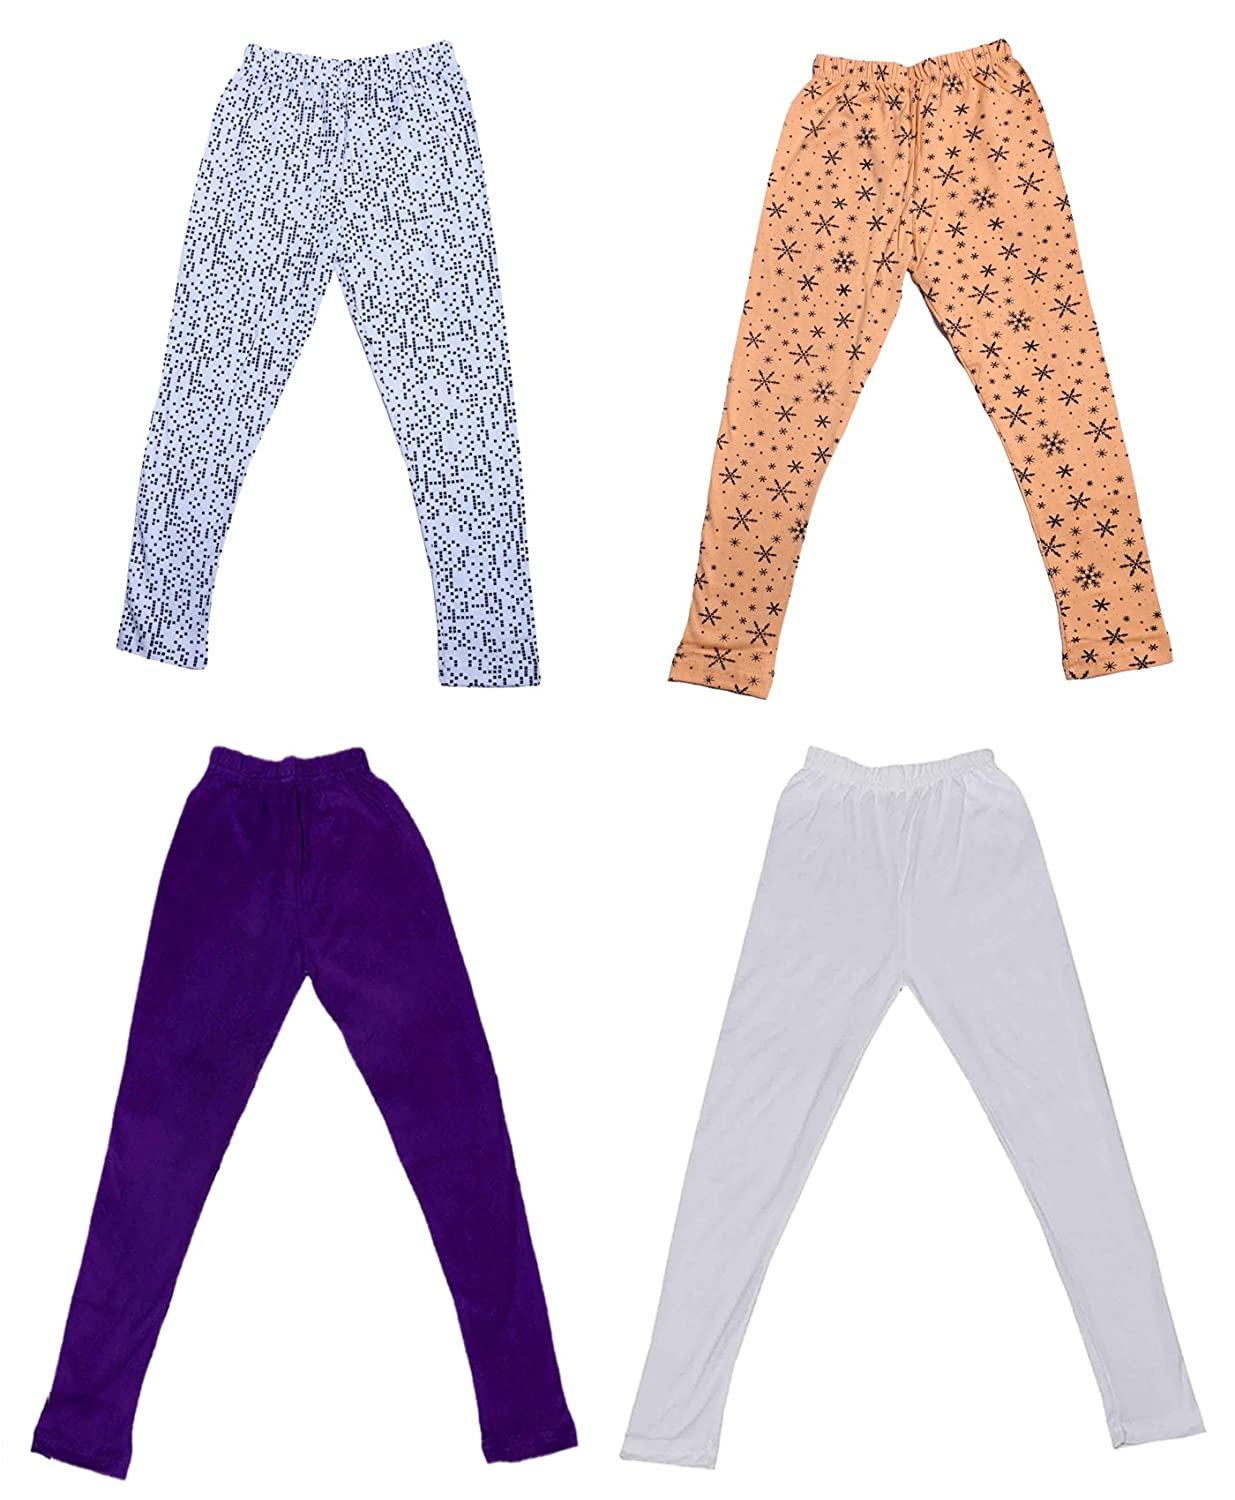 /_Multicolor/_Size-4-5 Years/_71402031921-IW-P4-26 and 2 Cotton Printed Legging Pants Pack Of 4 Indistar Girls 2 Cotton Solid Legging Pants